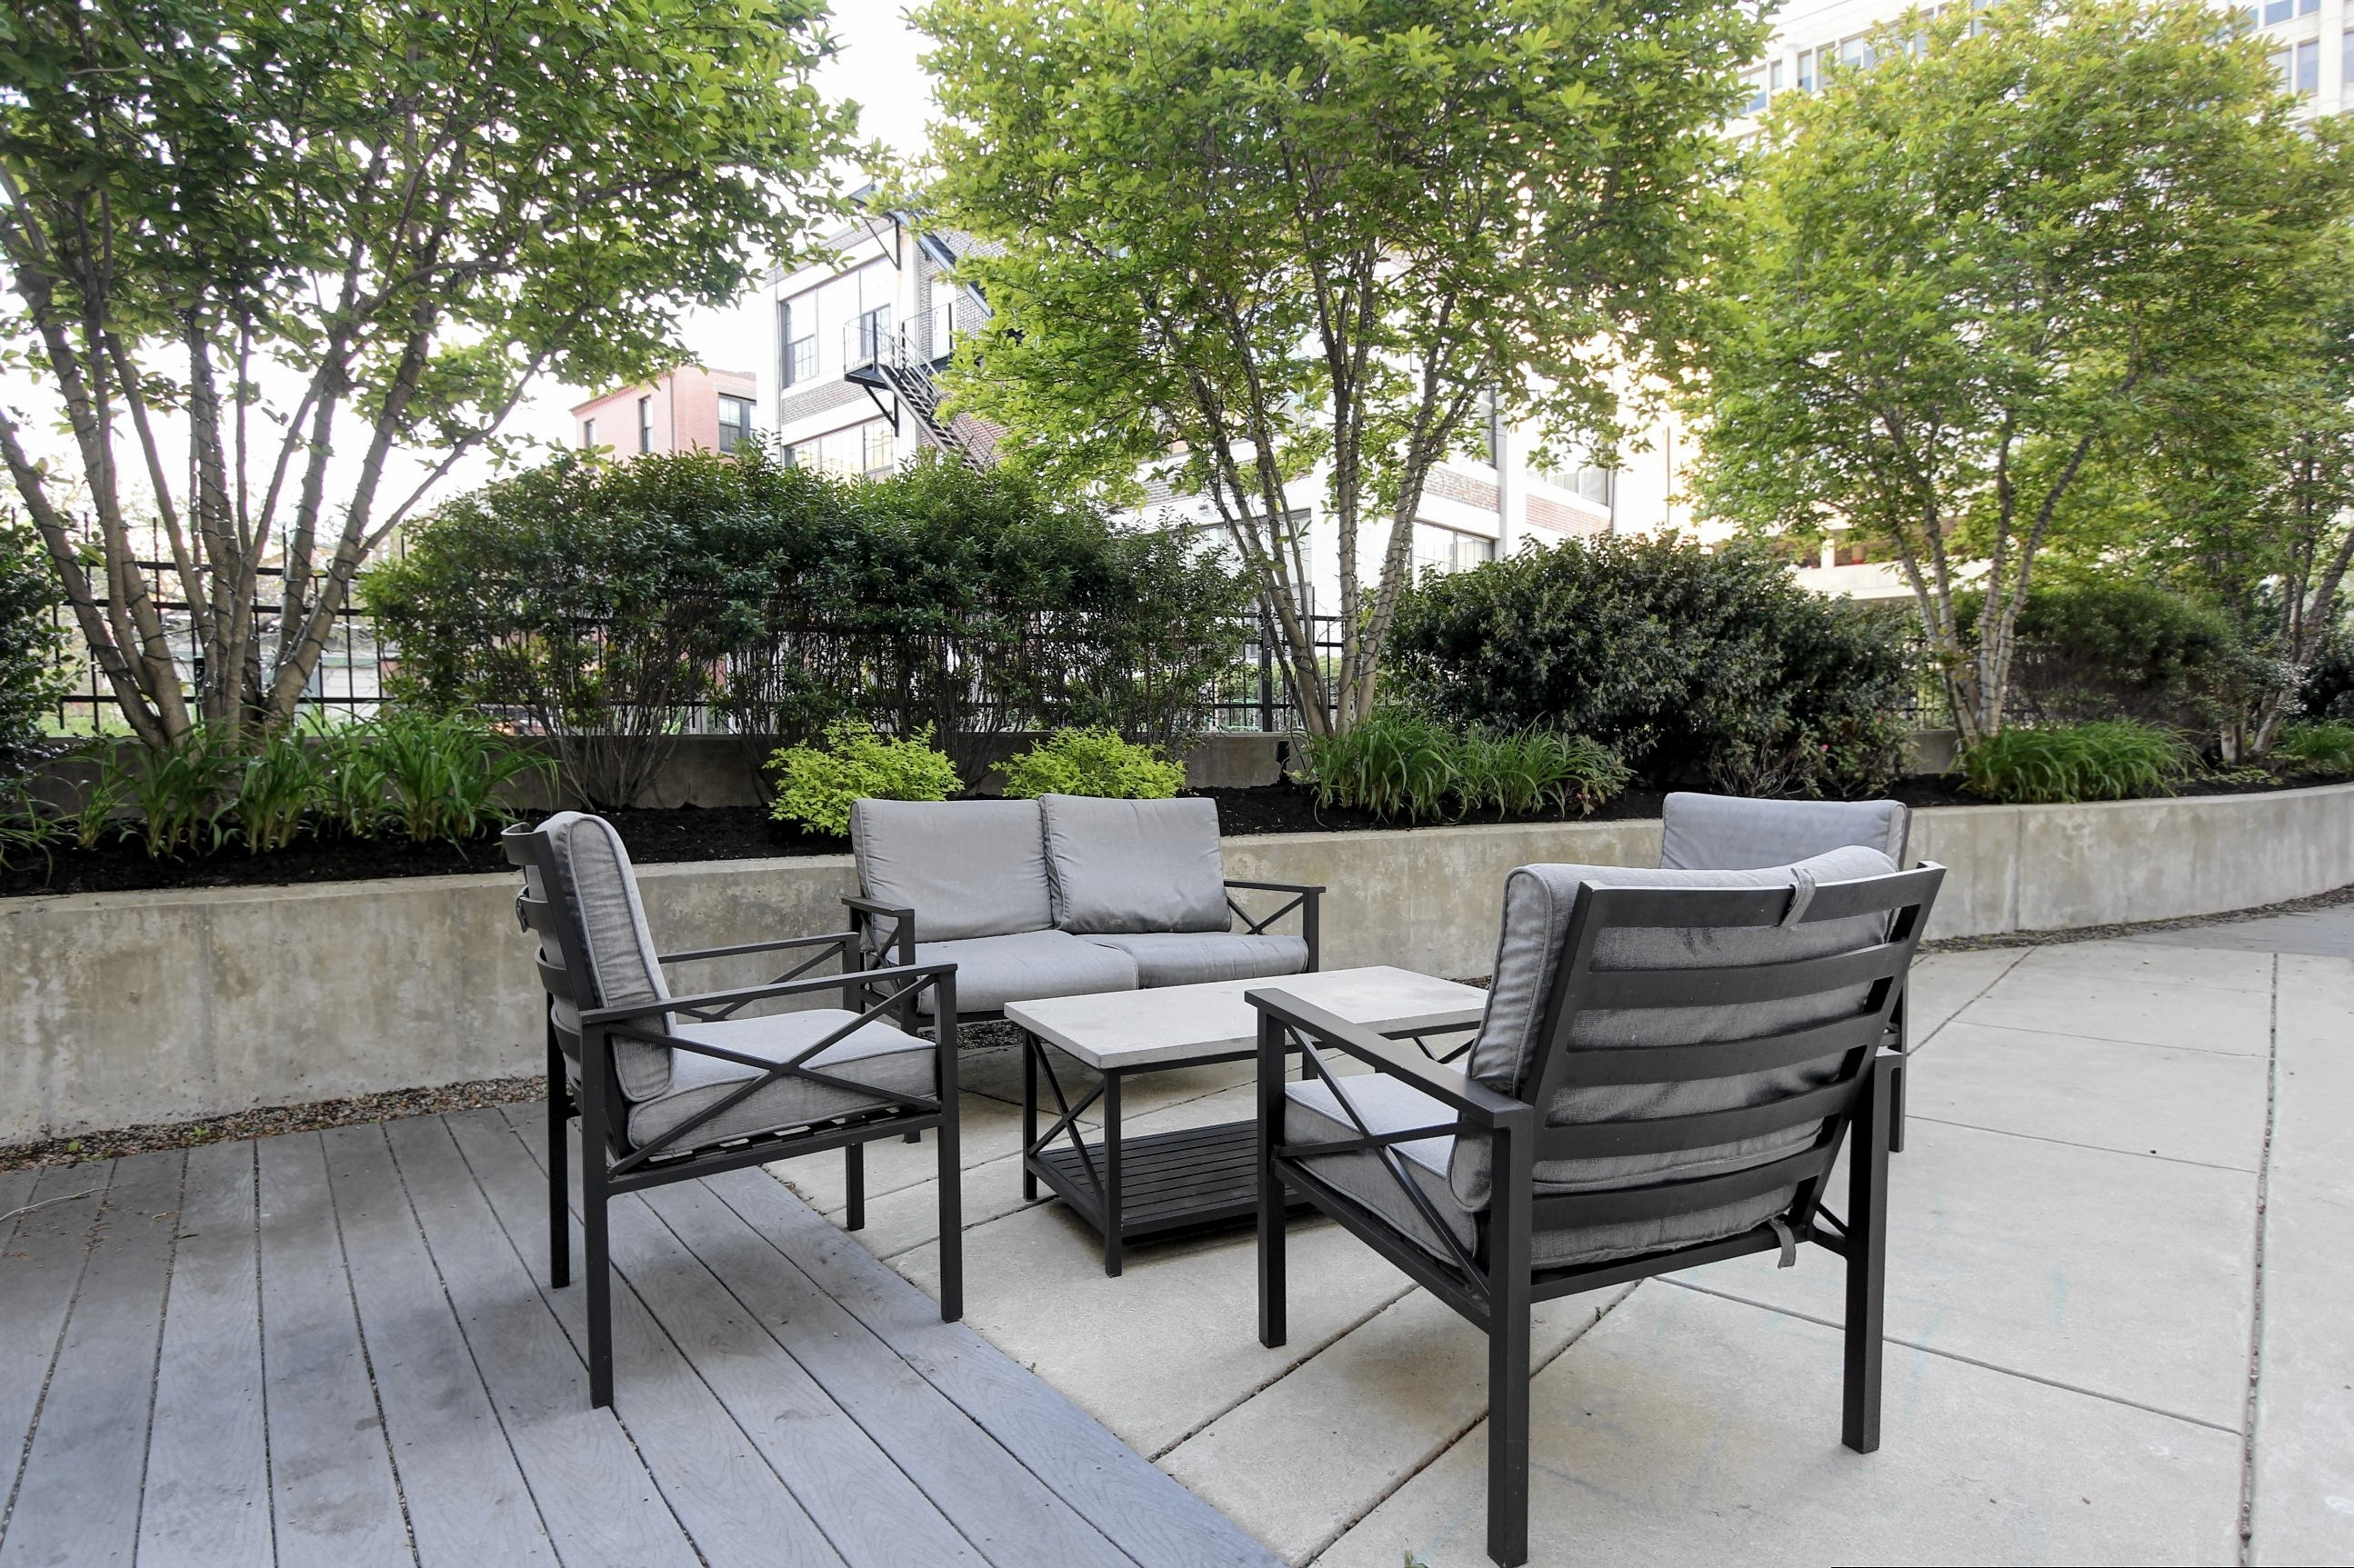 DND Affordable Condo 700 Harrison Ave South End